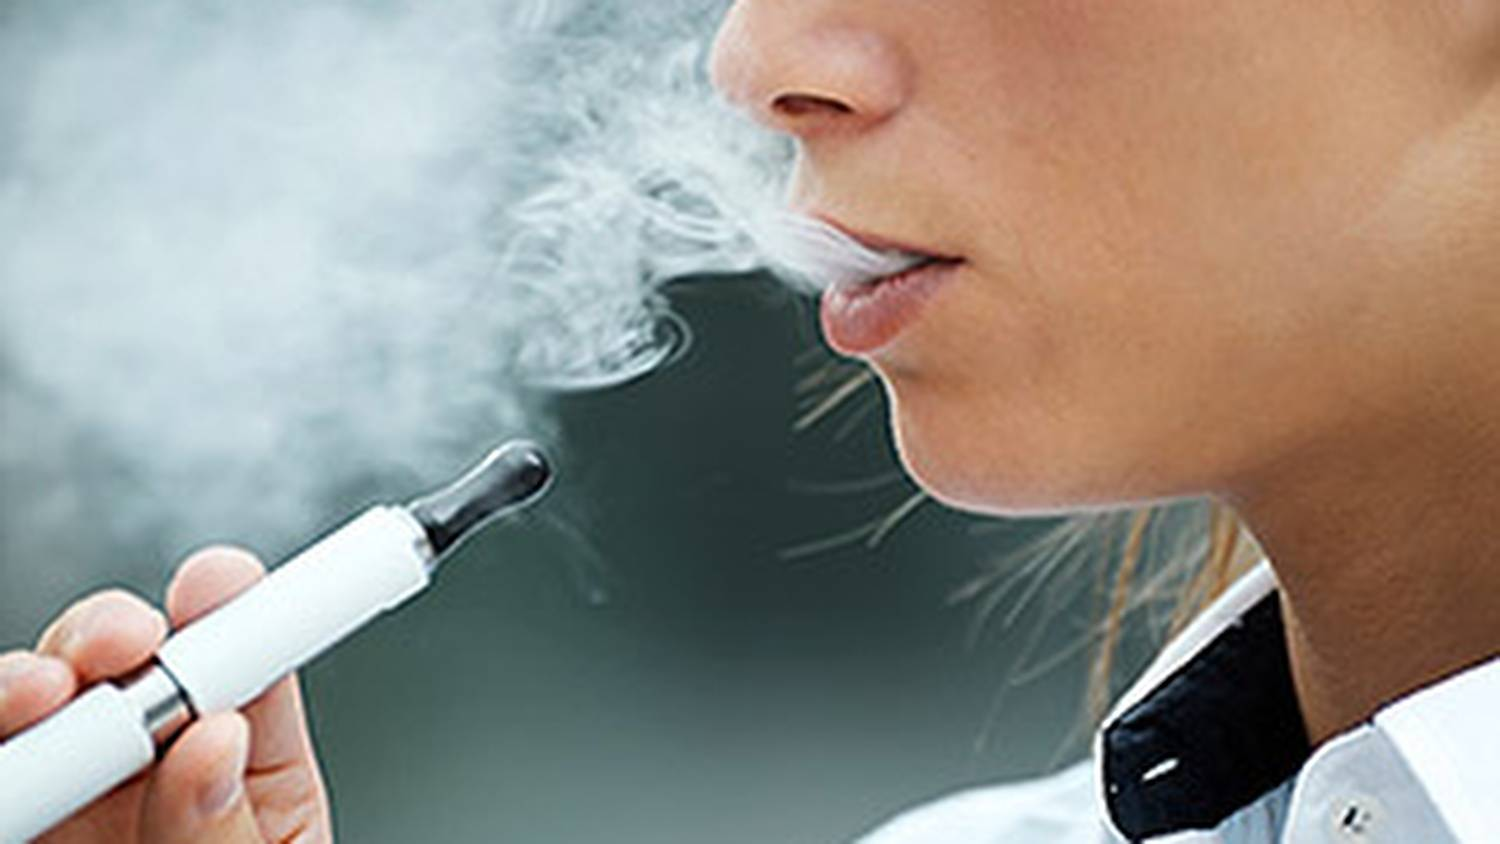 E-Cigarette Use Increase Among Teens in Mississippi